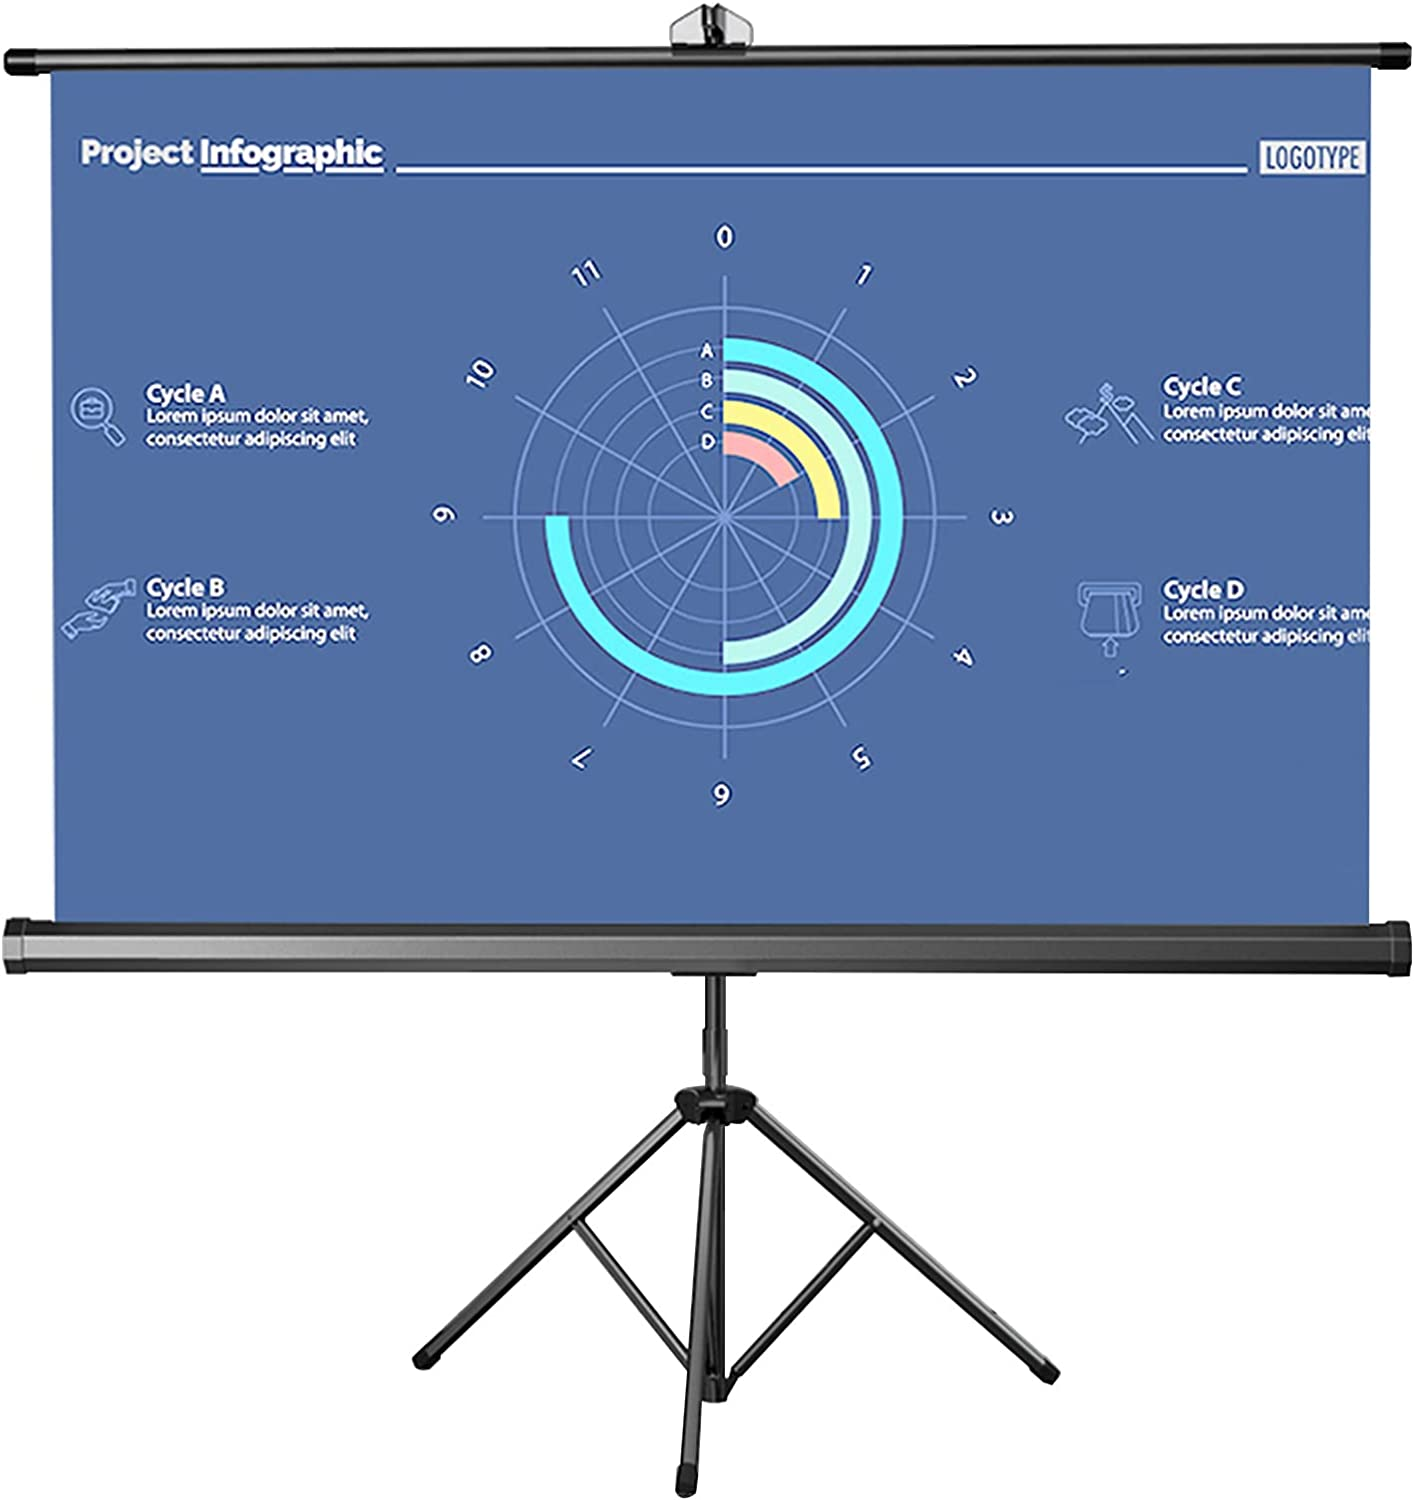 LIUU 60in Manufacturer direct delivery Outdoor Projector Screen S with Projection Max 88% OFF Video Stand